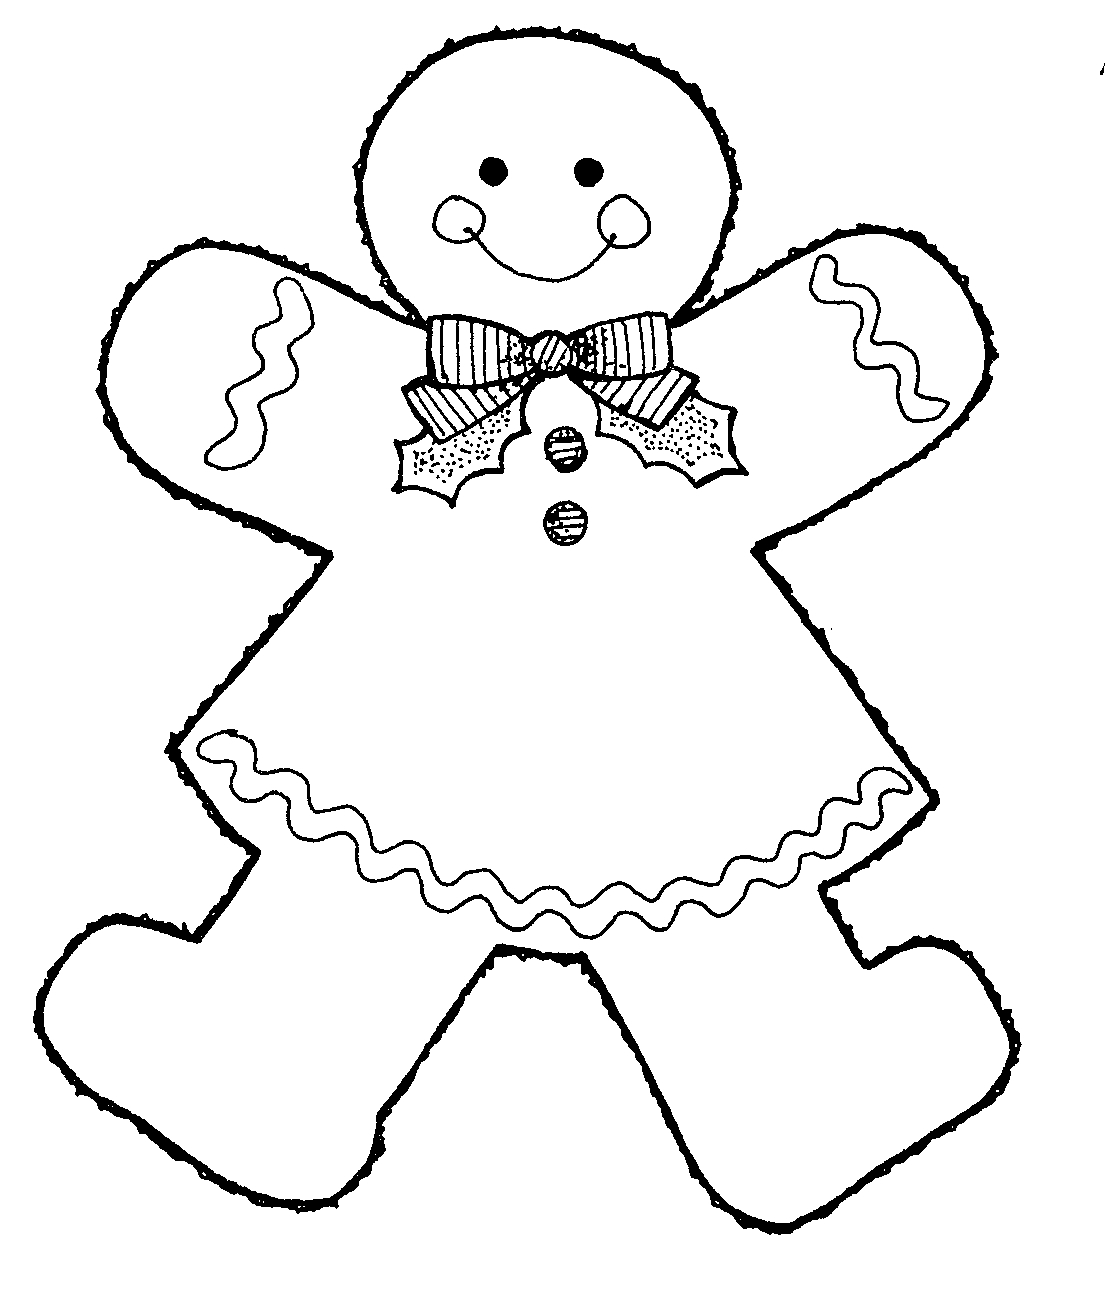 Free Ginger Bread Man Pictures Download Free Clip Art